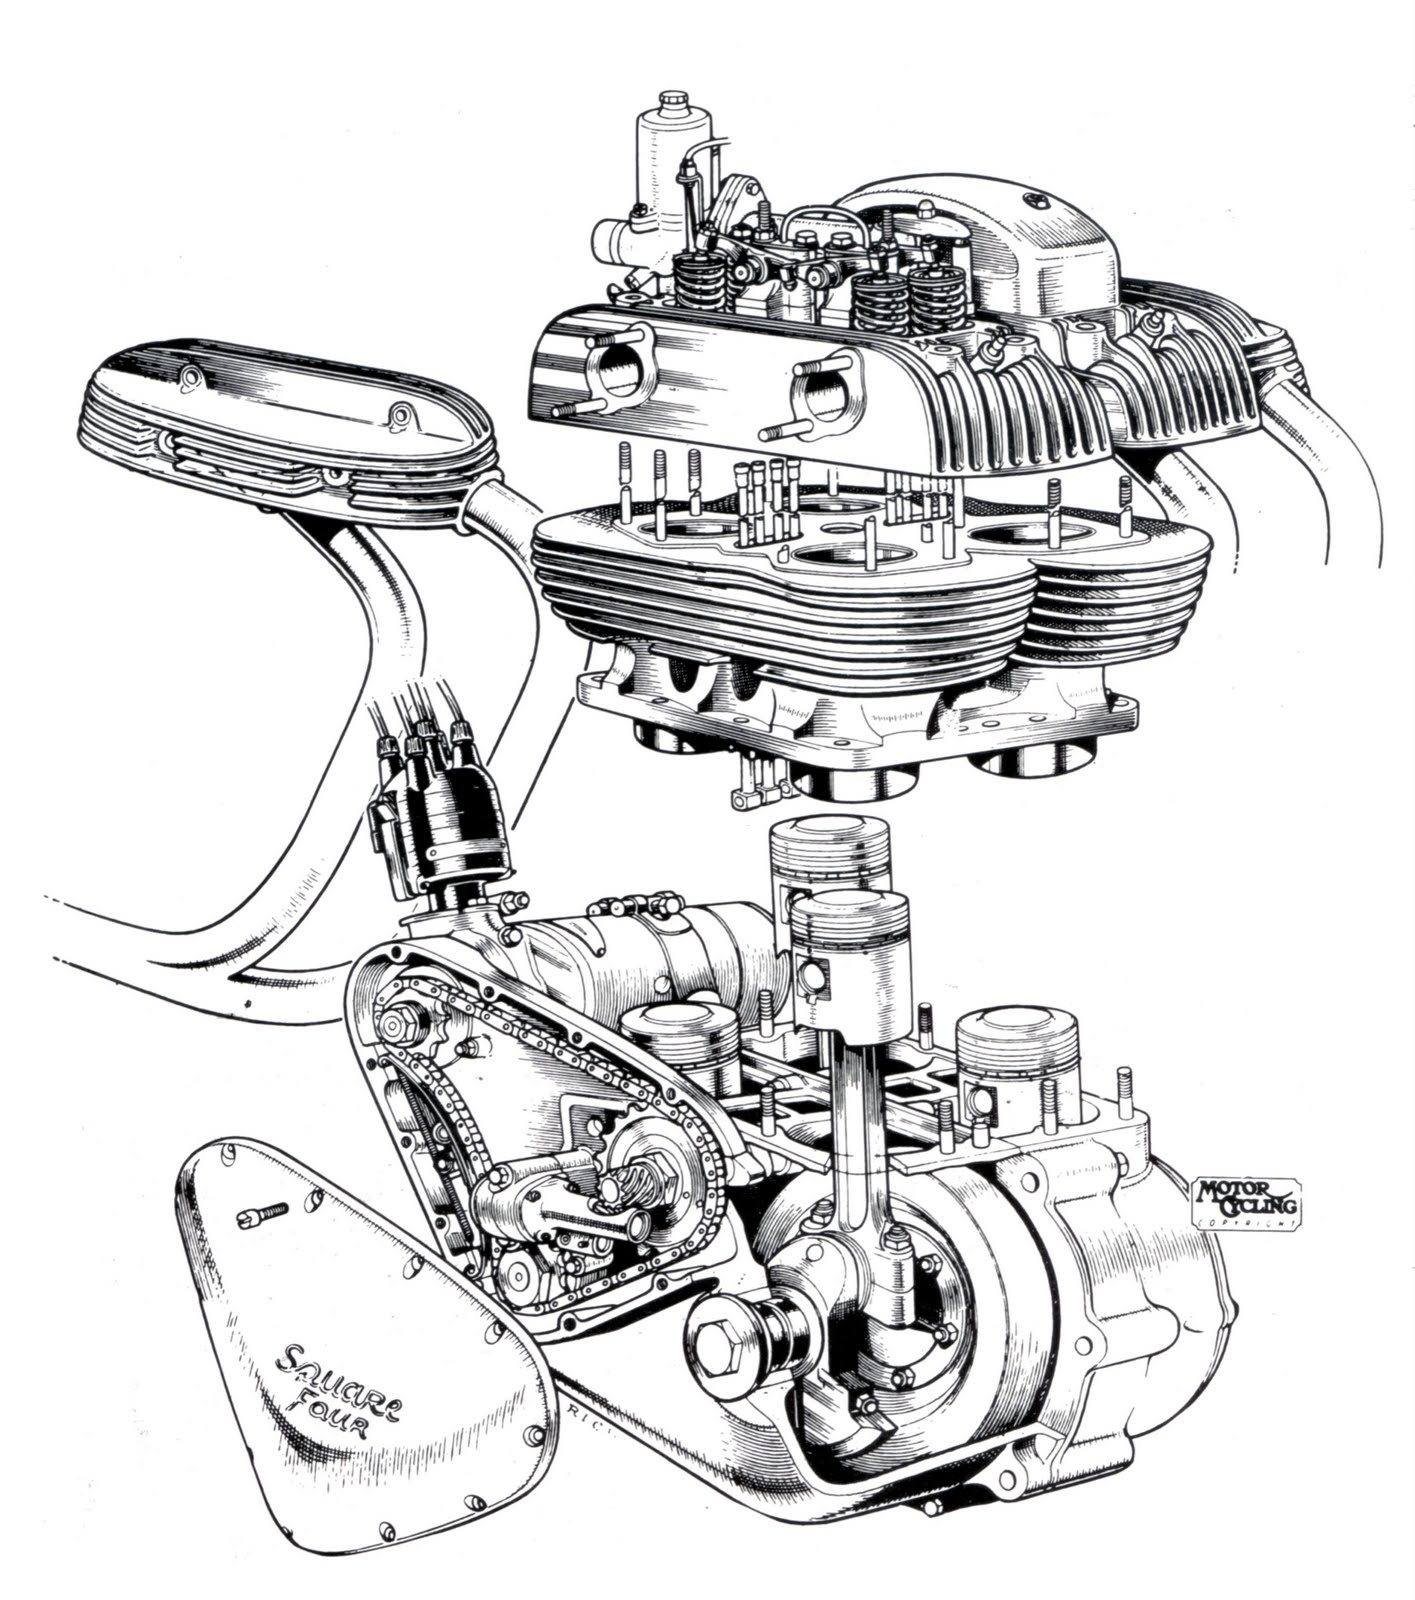 ariel square four cool engine cutaway drawing motorcycle photo ariel square four cool engine cutaway drawing motorcycle photo of the day